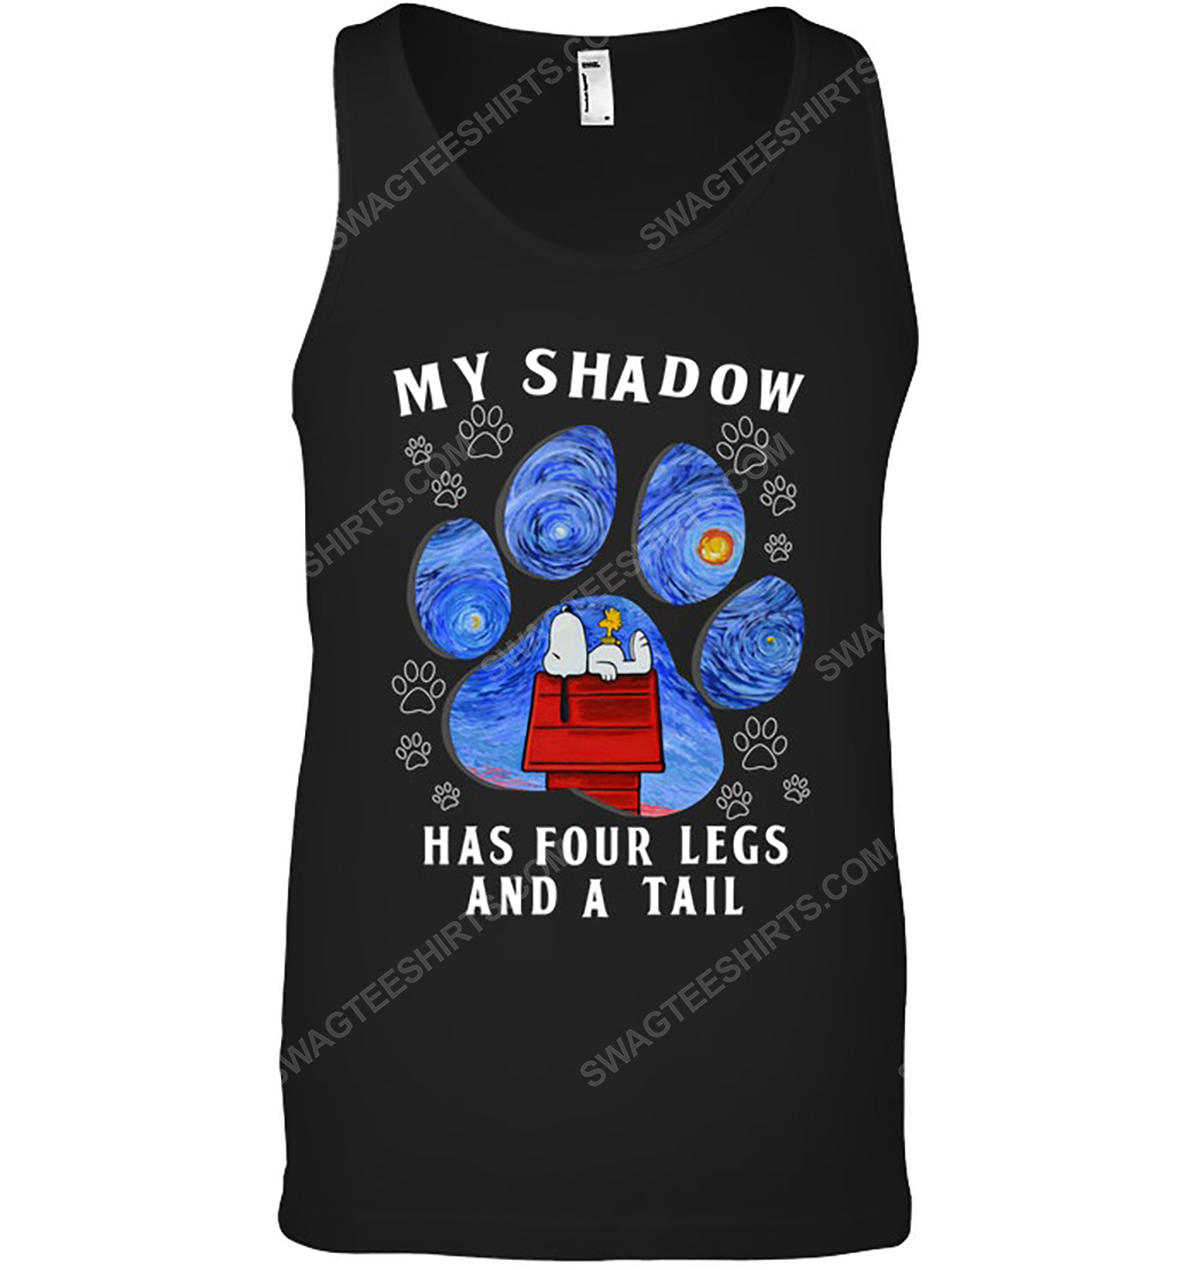 The starry night snoopy my shadow has 4 legs and a tail tank top 1